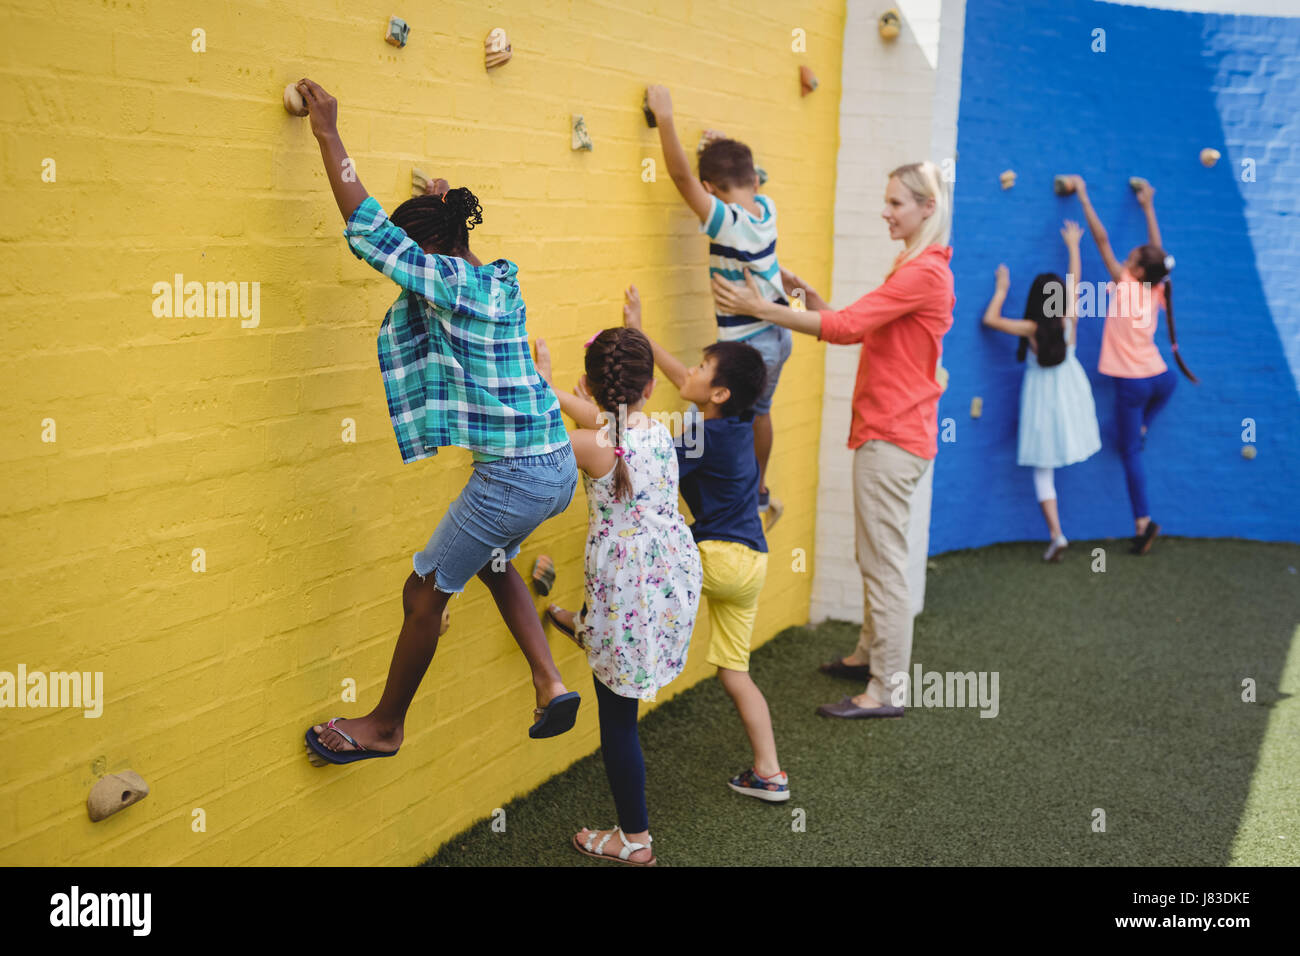 Trainer assisting kids in climbing wall in school - Stock Image